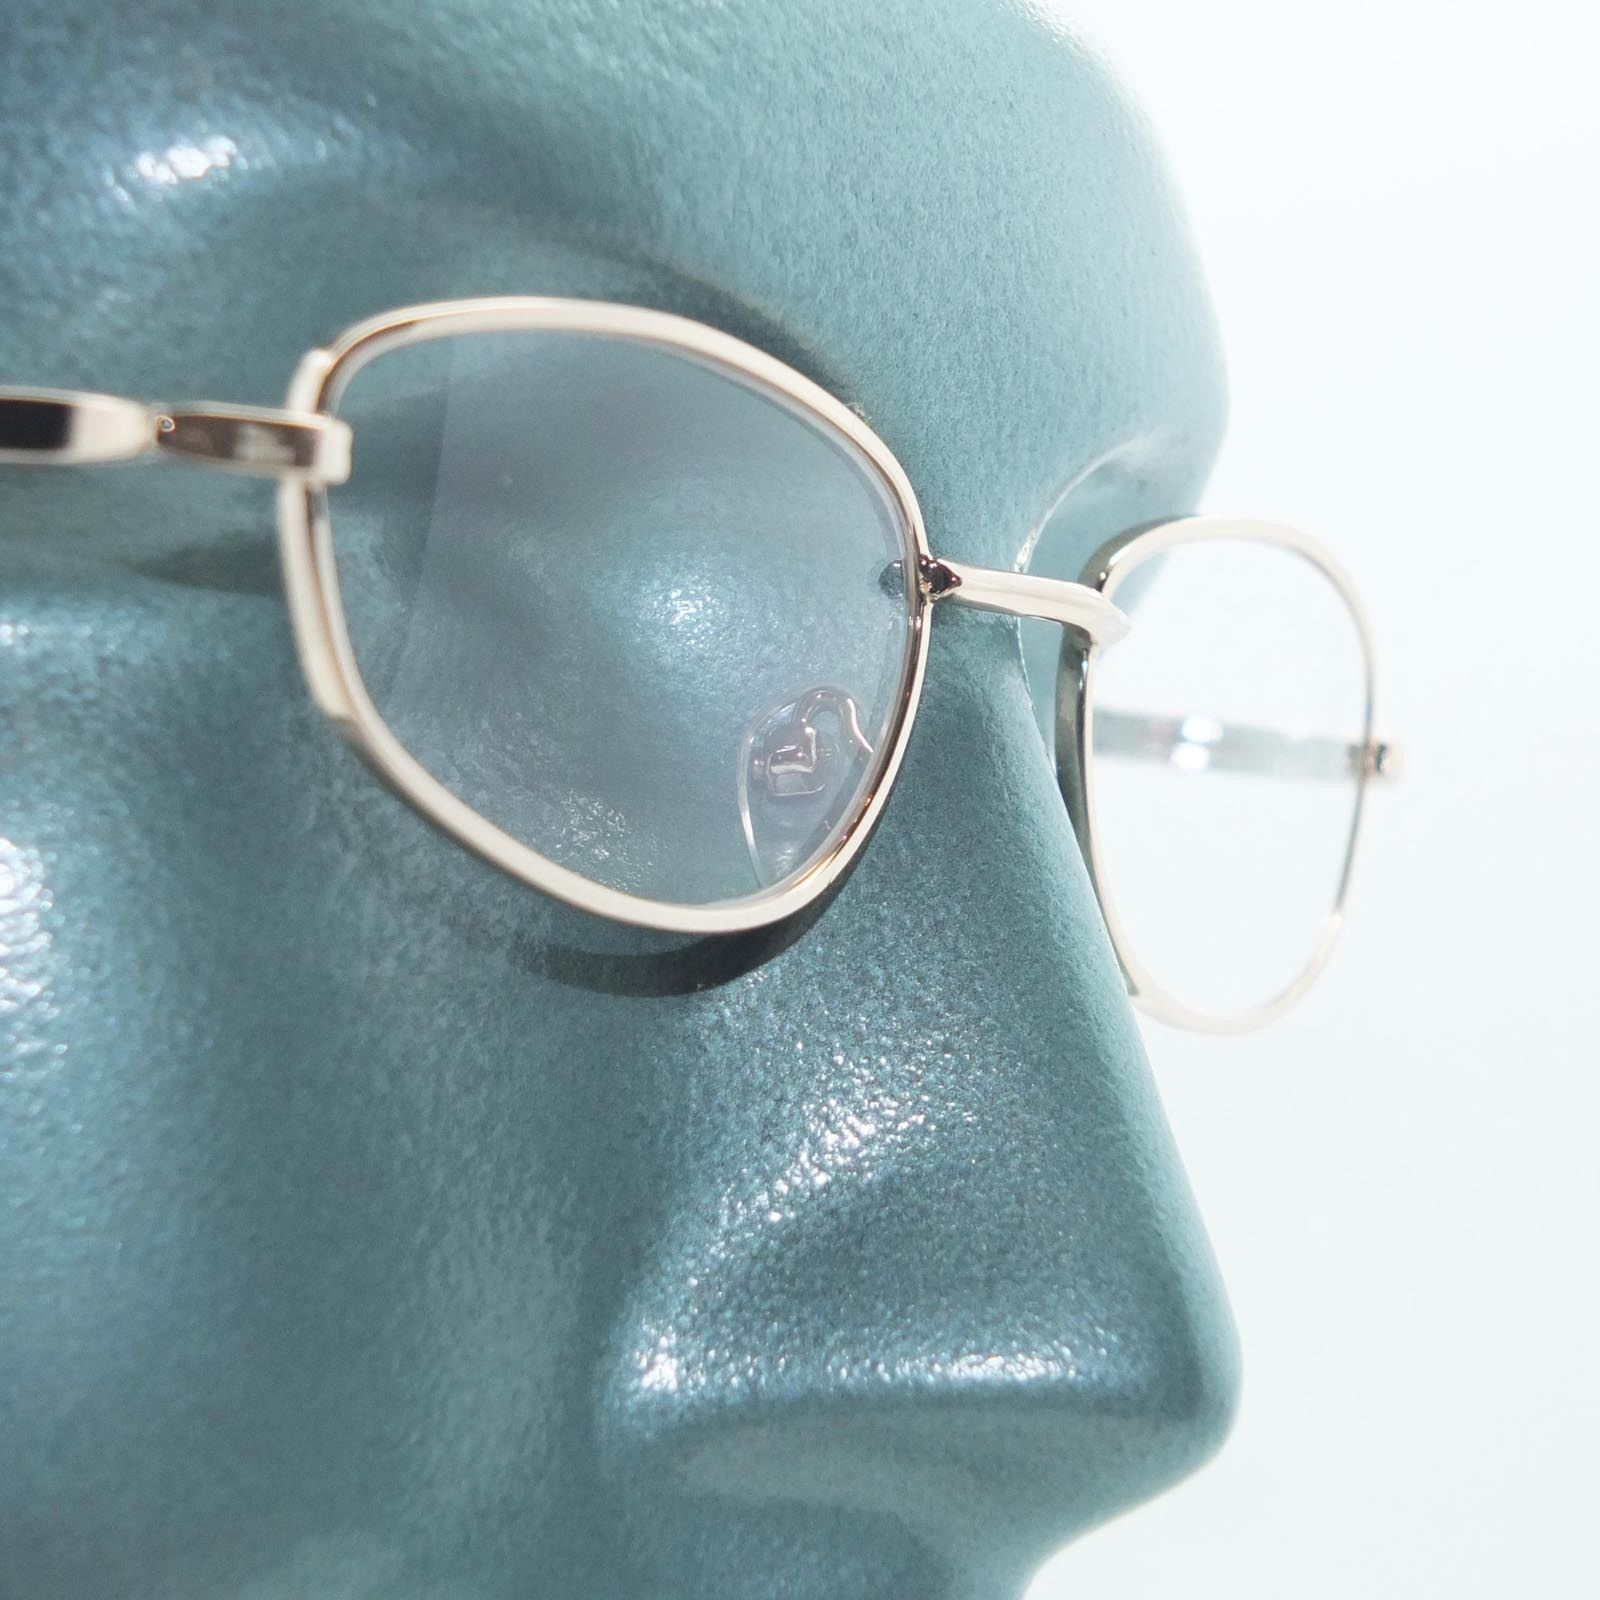 Primary image for Wire Rim Polished Gold Frame Reading Glasses Lightweight Small Lens +1.50